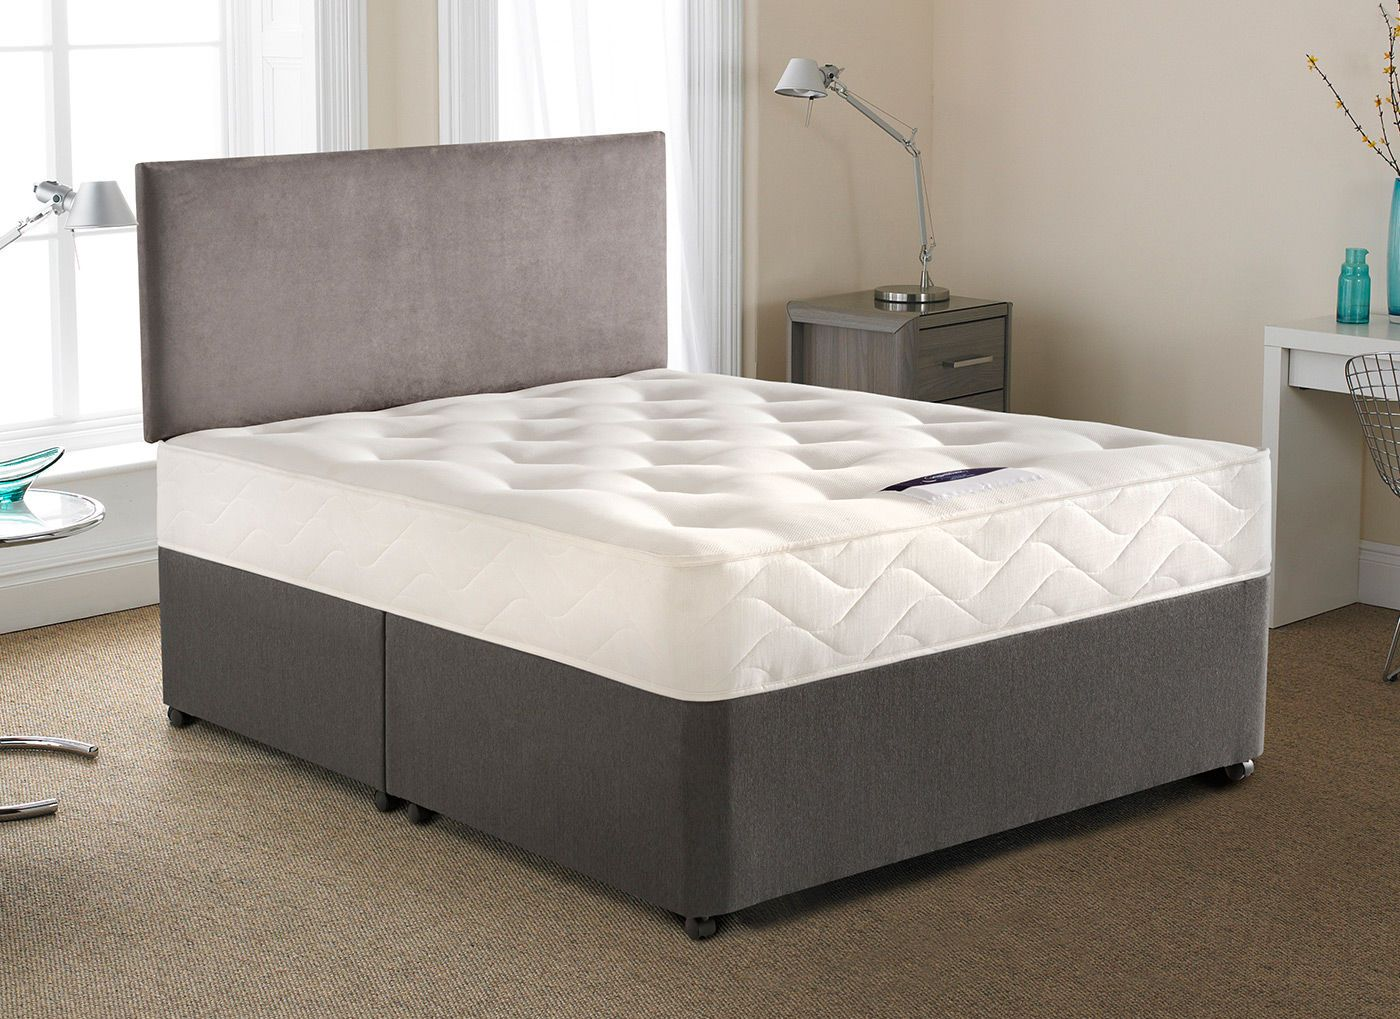 You Ll Find Sumptuous Comfort In The Radley Divan Bed From